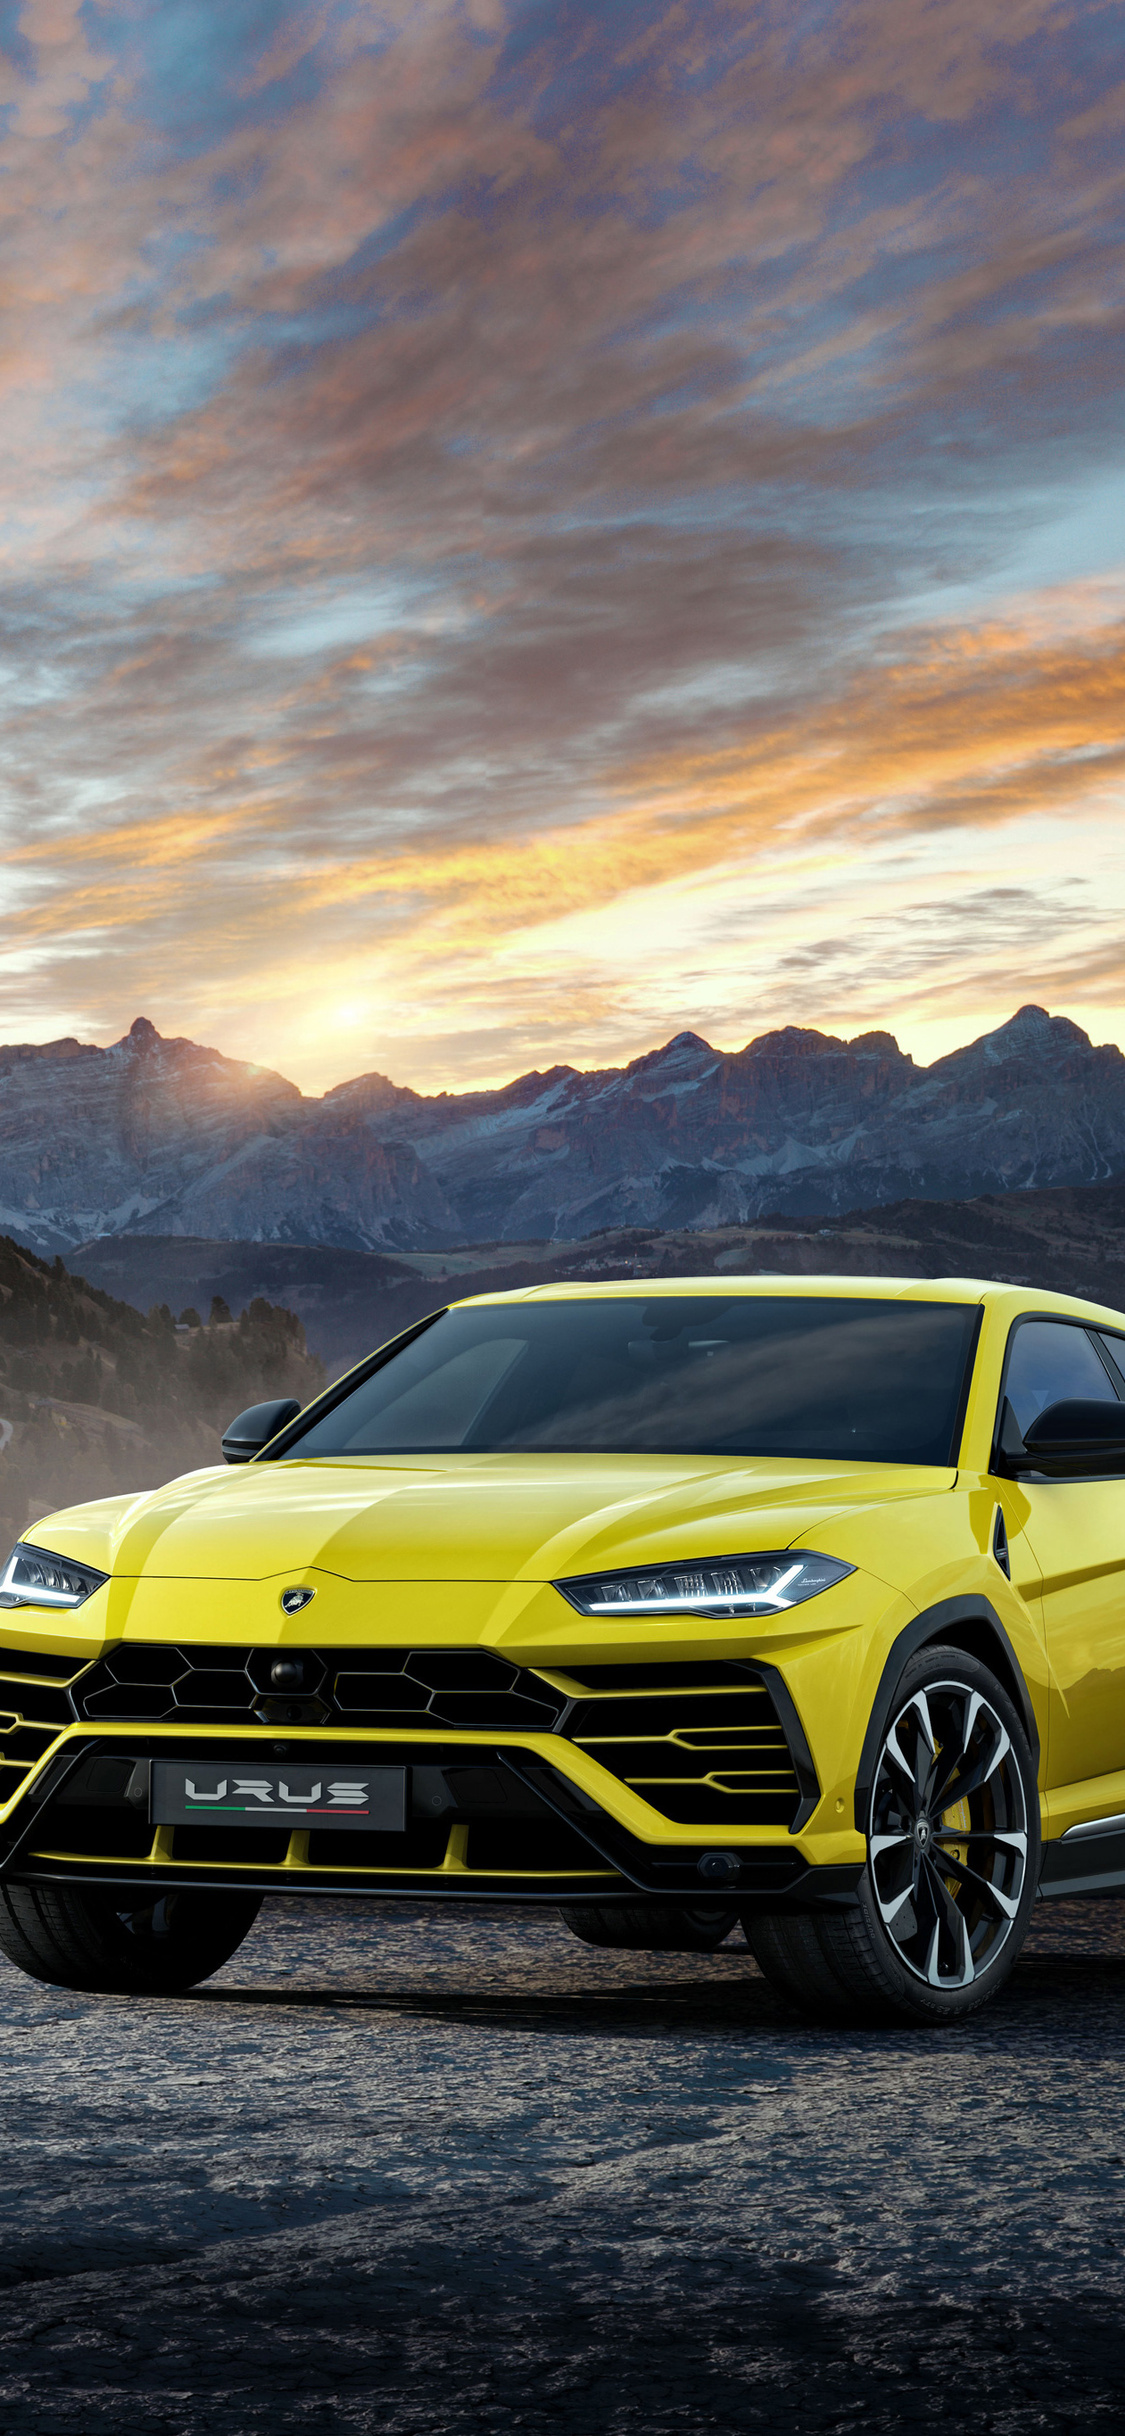 1125x2436 lamborghini urus black and yellow 4k iphone x,iphone 10 hd